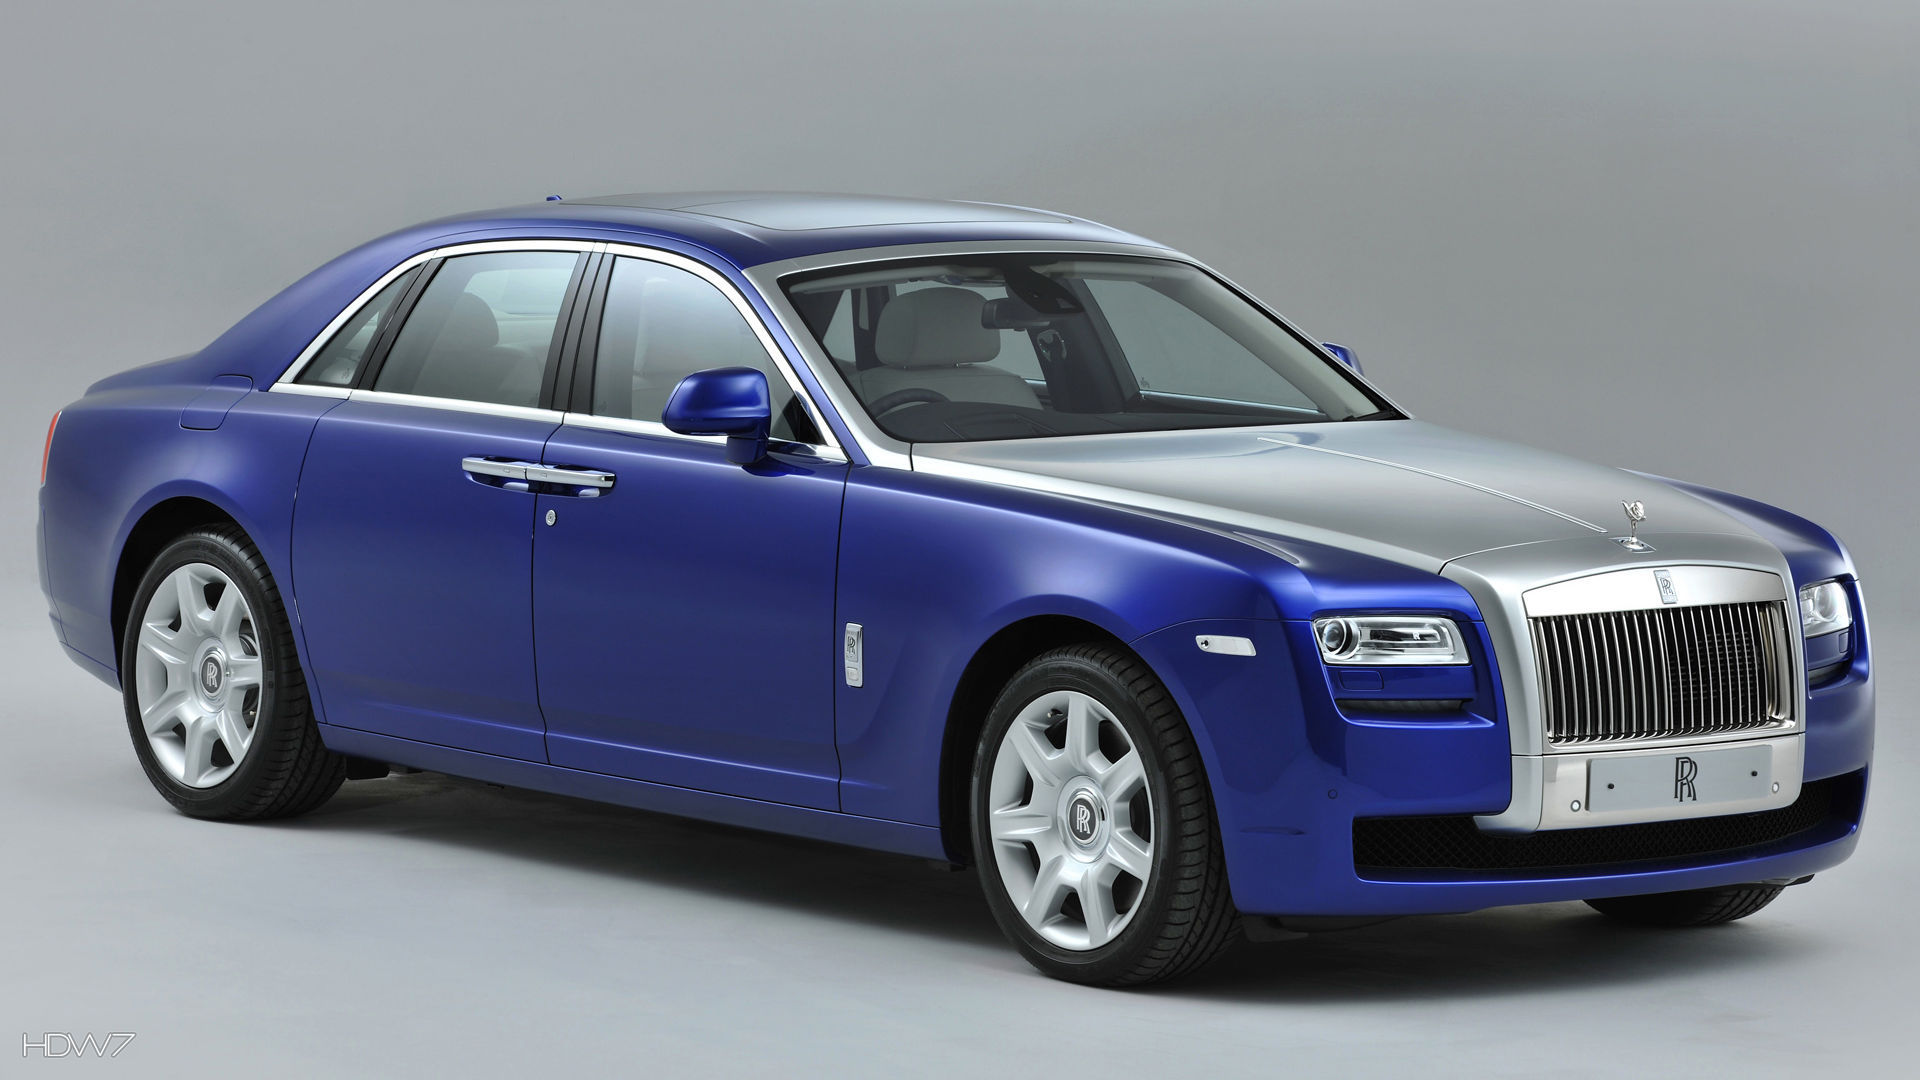 rolls royce ghost bespoke mazarine blue 2012 car hd wallpaper